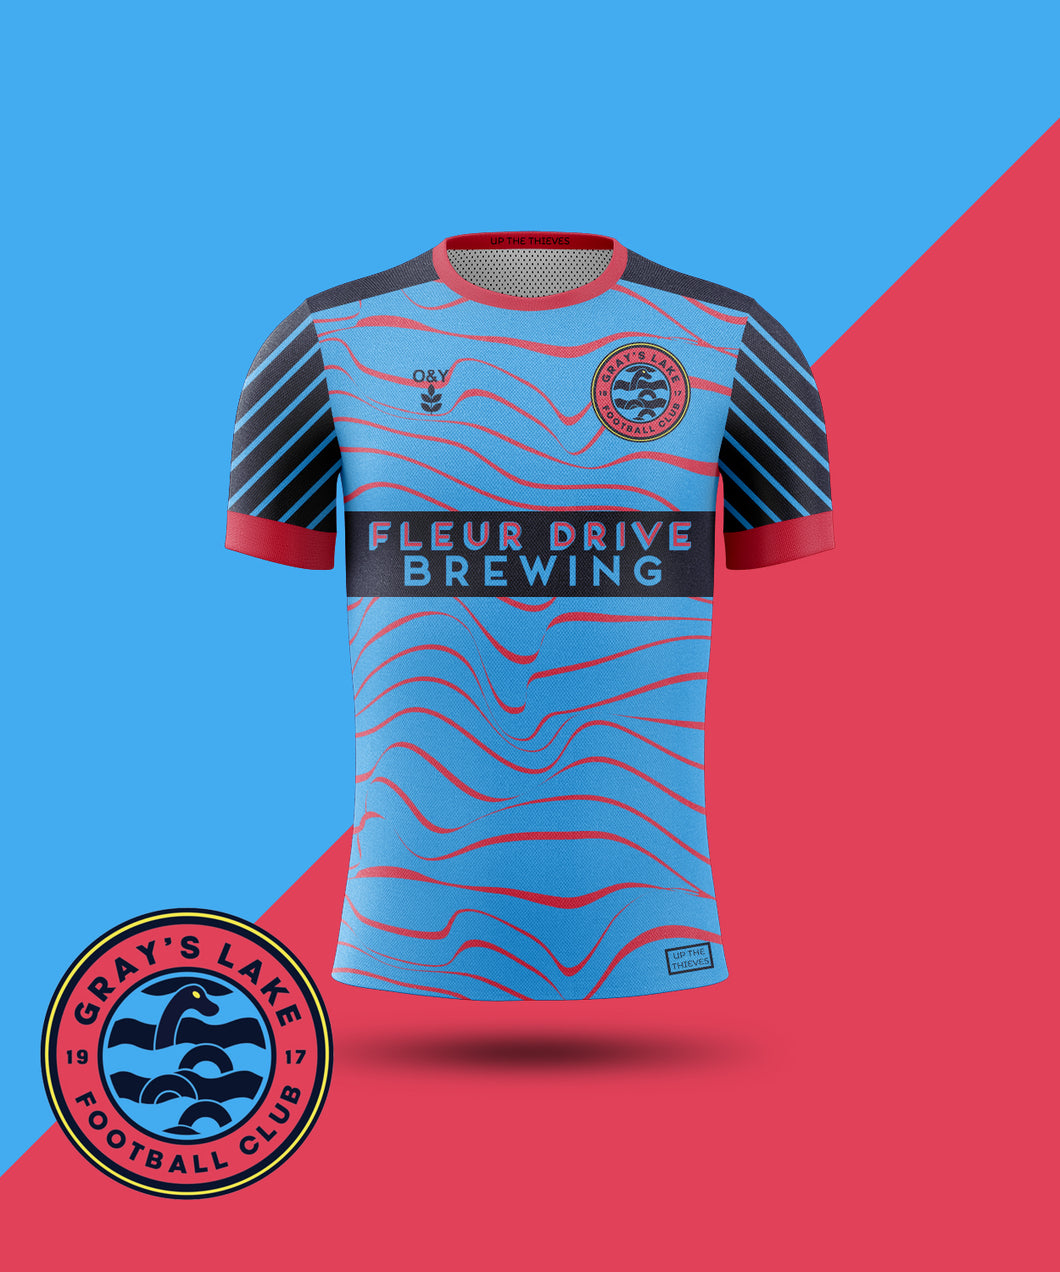 GLFC UpTheThieves Kit